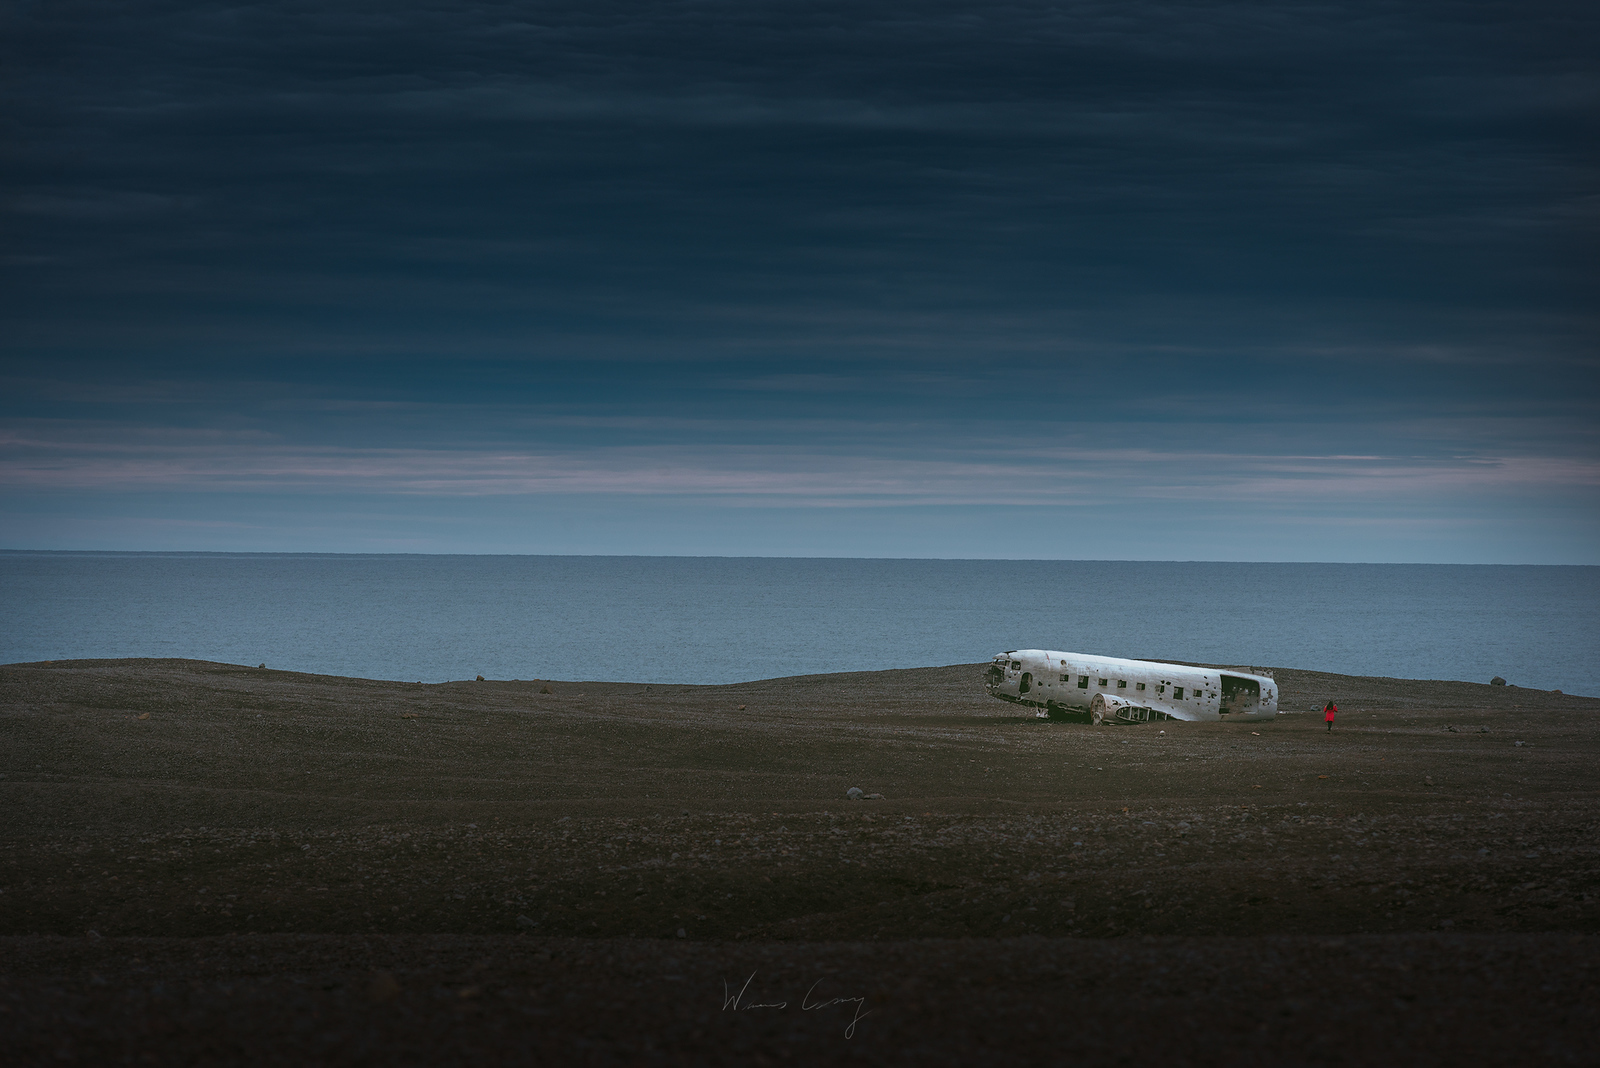 DC-3 Wreckage, Iceland